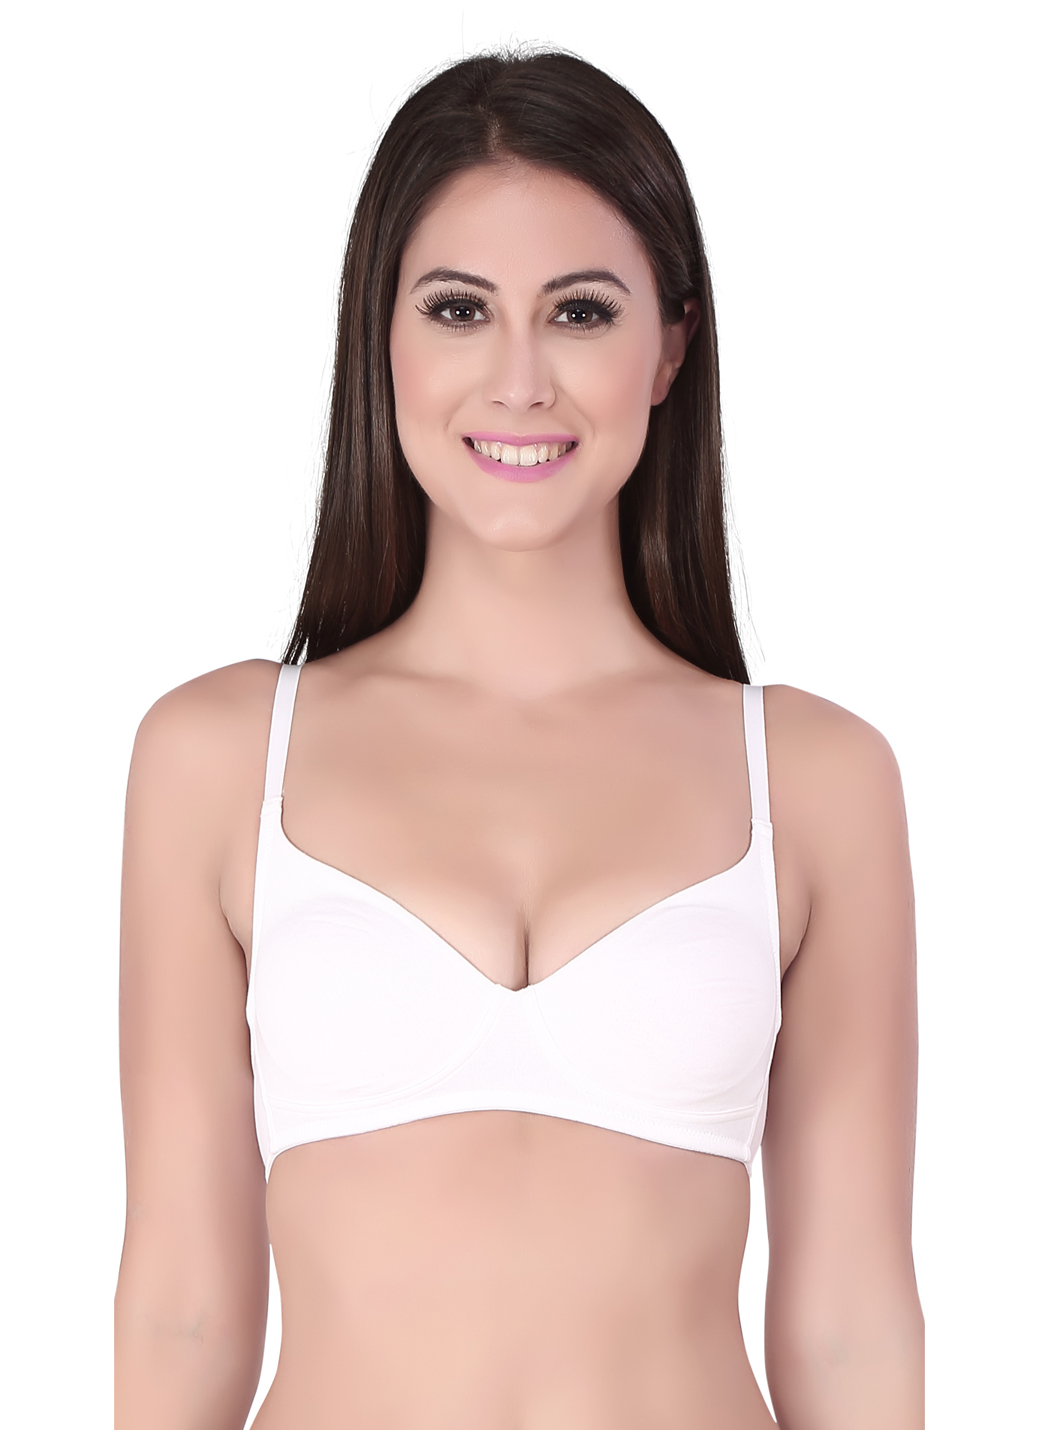 Soie Non-Padded, Non-Wired Demi Cup Bra - White  available at Nykaa for Rs.174